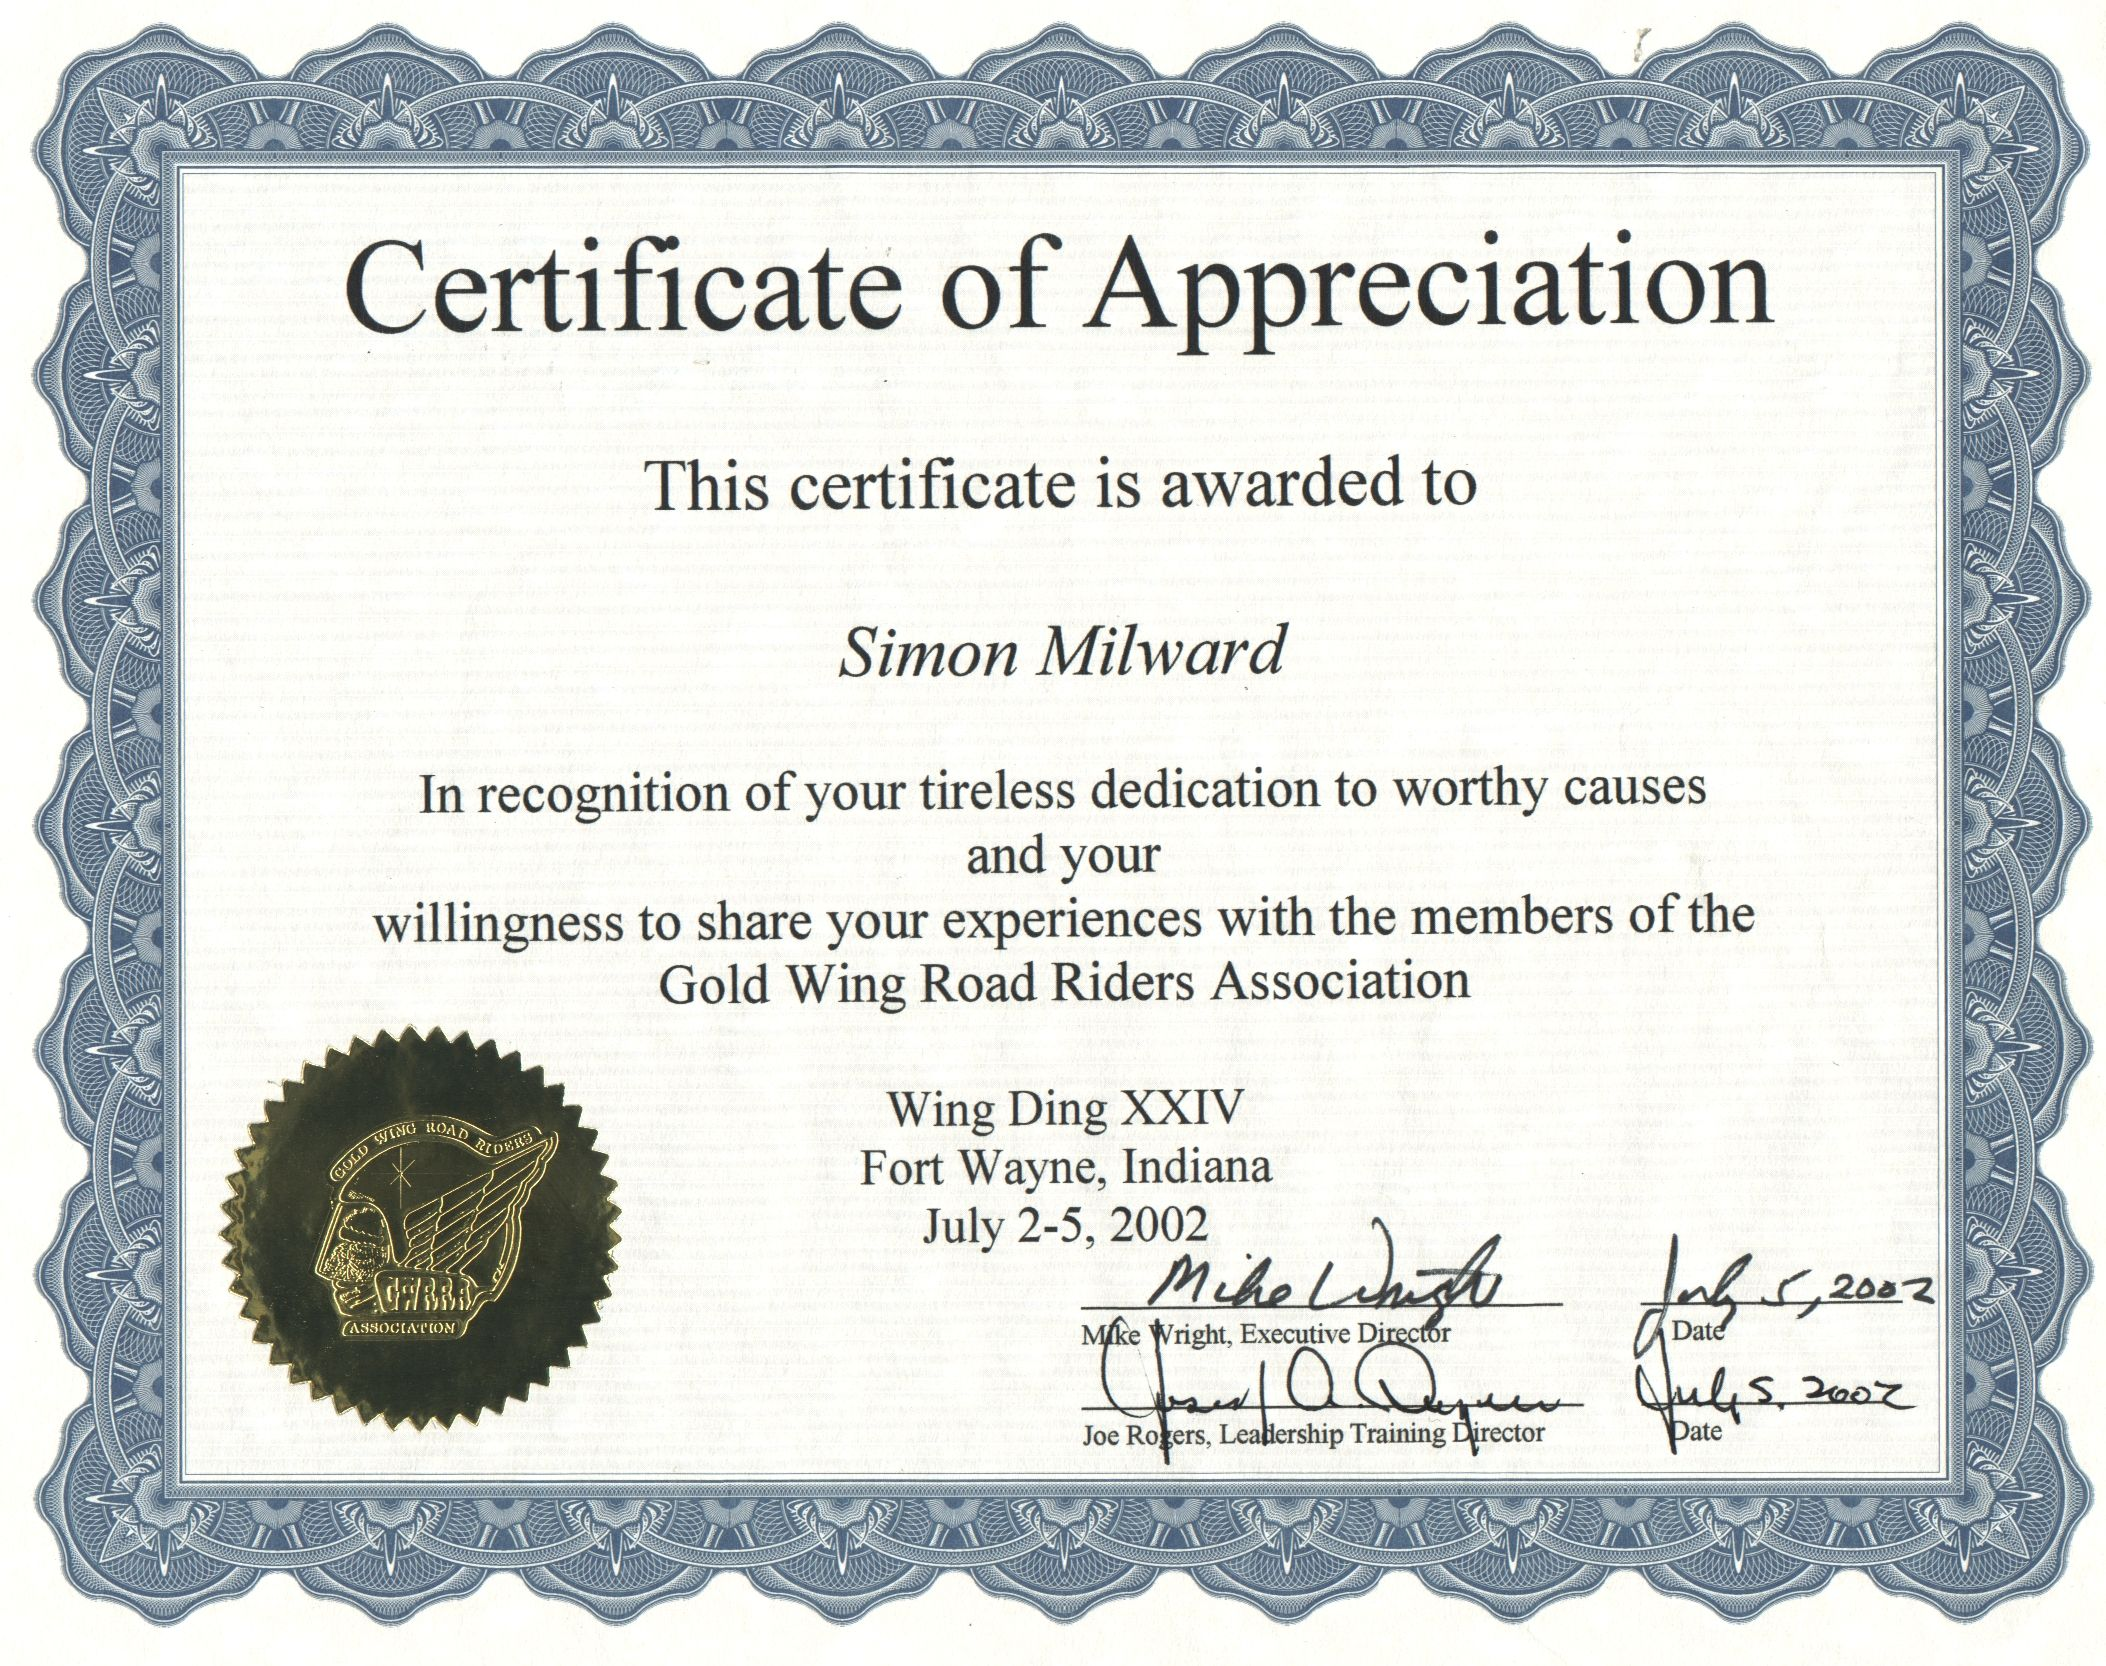 Examples Of Certificates Of Appreciation Wording Certificate Of Recognition Wording  Examples   Template . And Certificates Of Appreciation Wording Samples